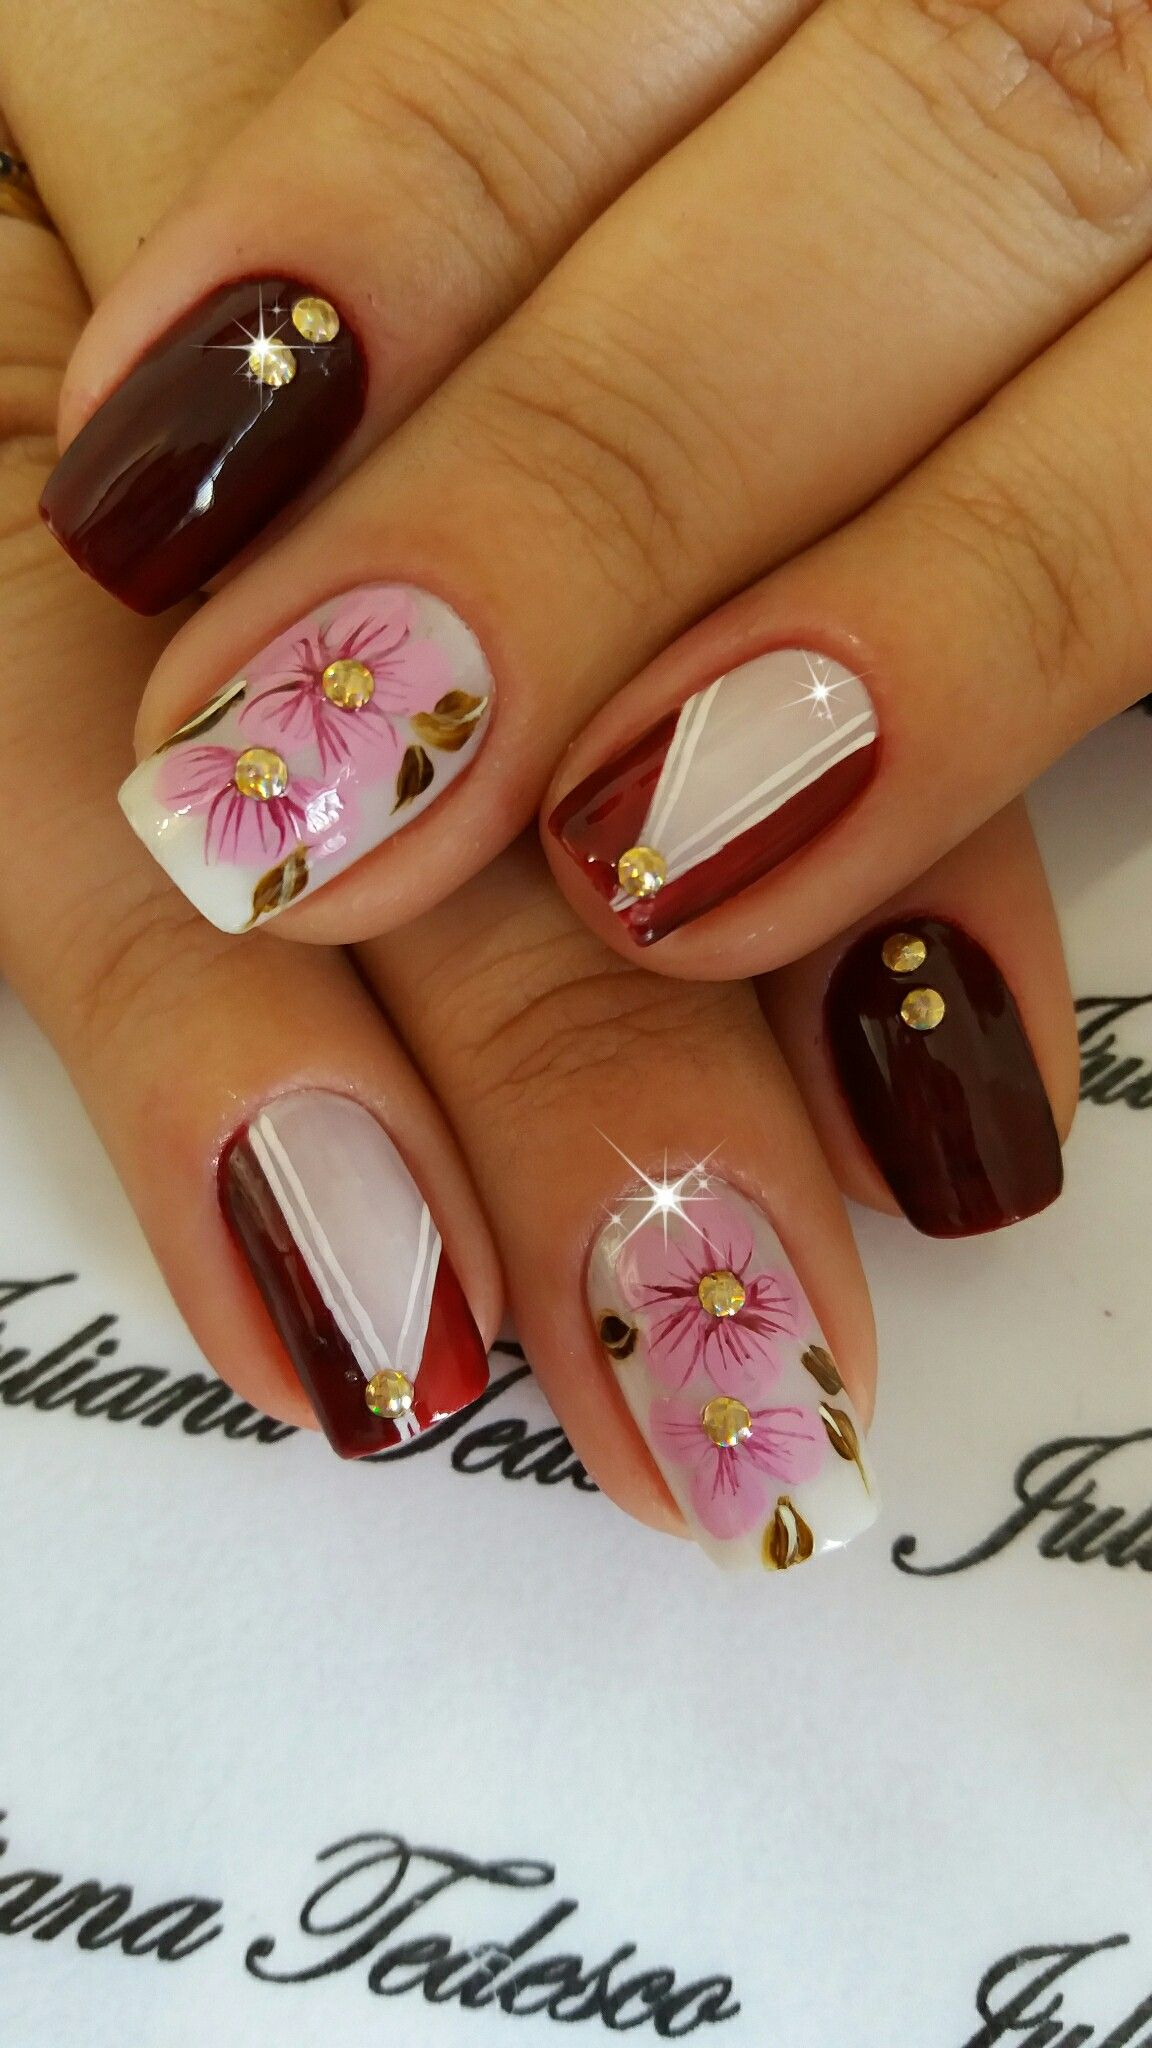 Pin de Juliana Tedesco en unhas de artes | Pinterest | Diseños de ...